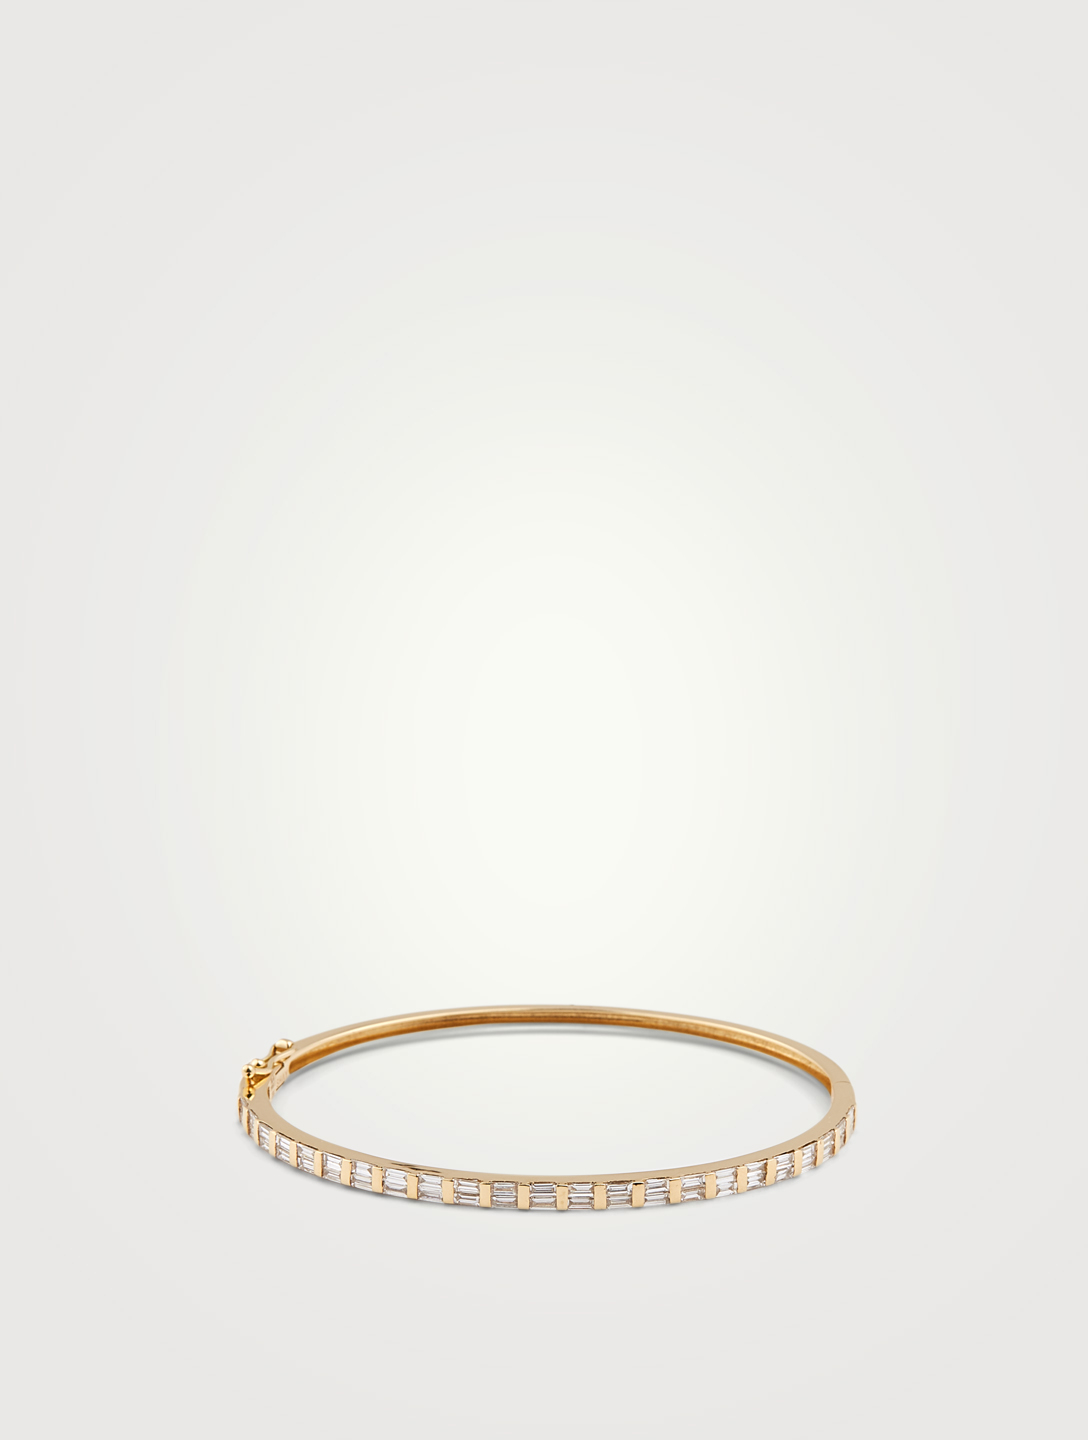 SHAY Bracelet rigide Baguette en or 18 ct serti de diamants Femmes Metallique